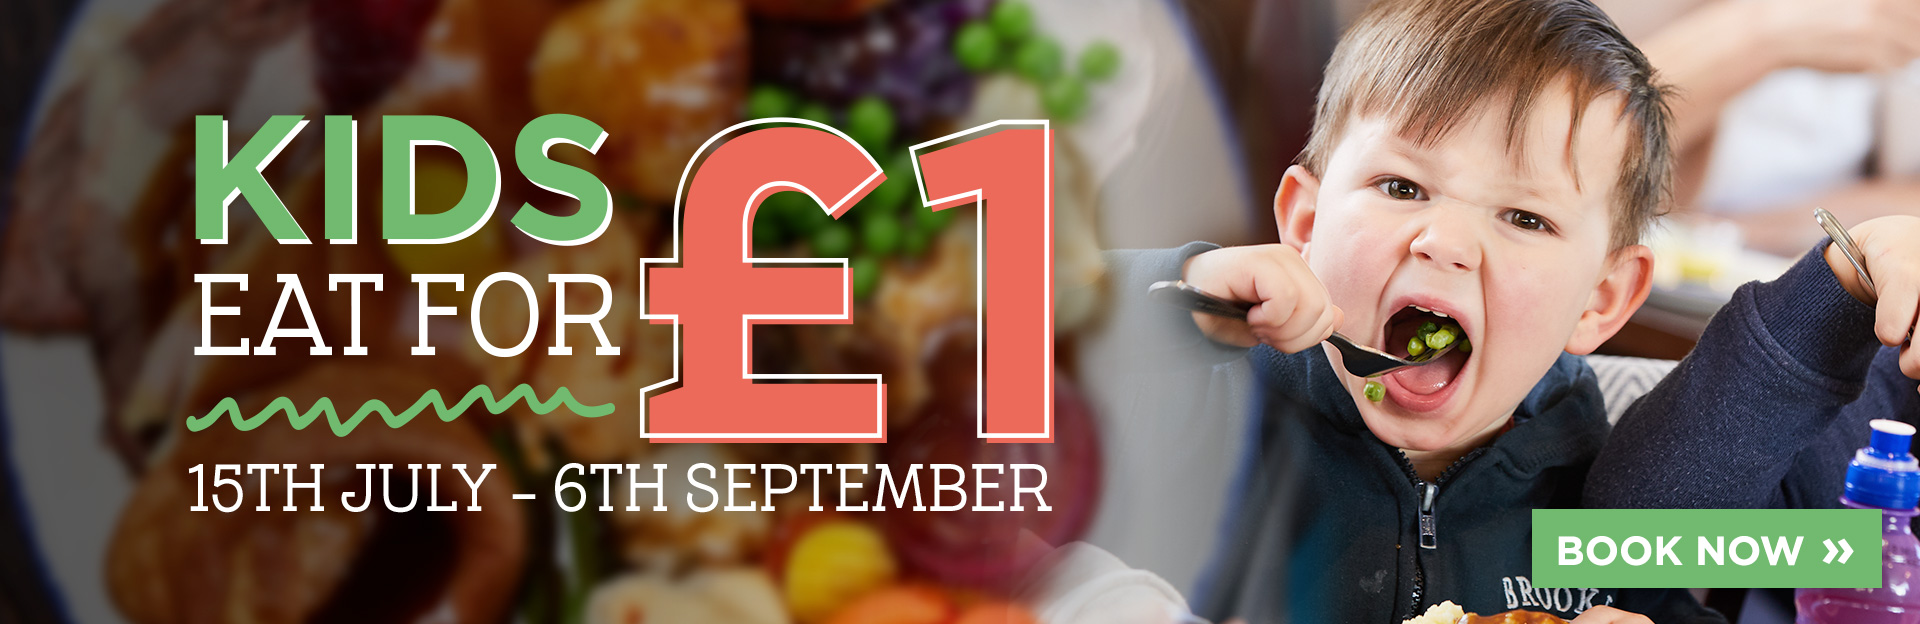 Kids eat for £1 at The Malt Shovel